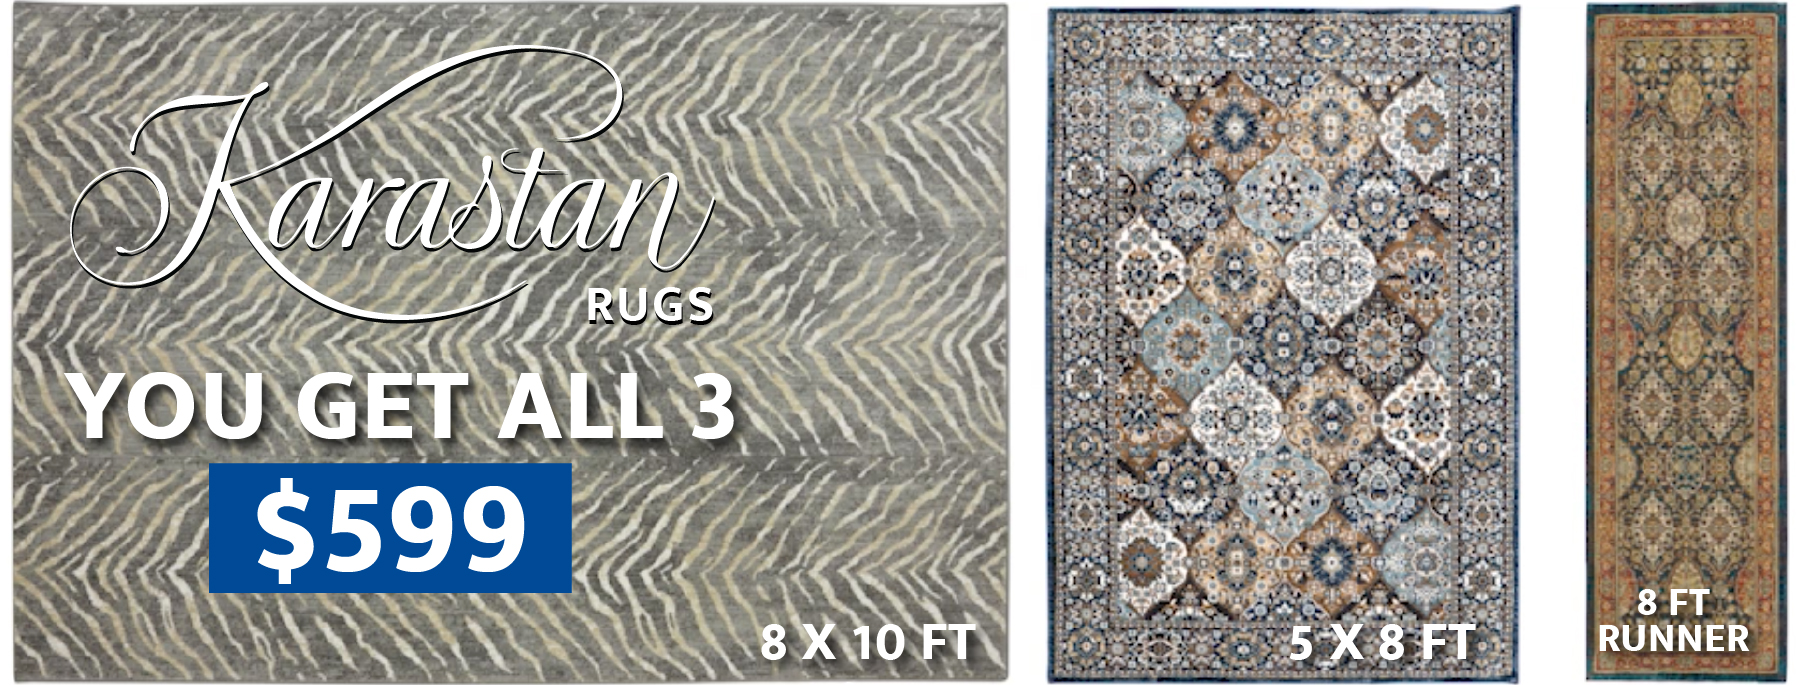 Karastan rugs you get all 3 $599